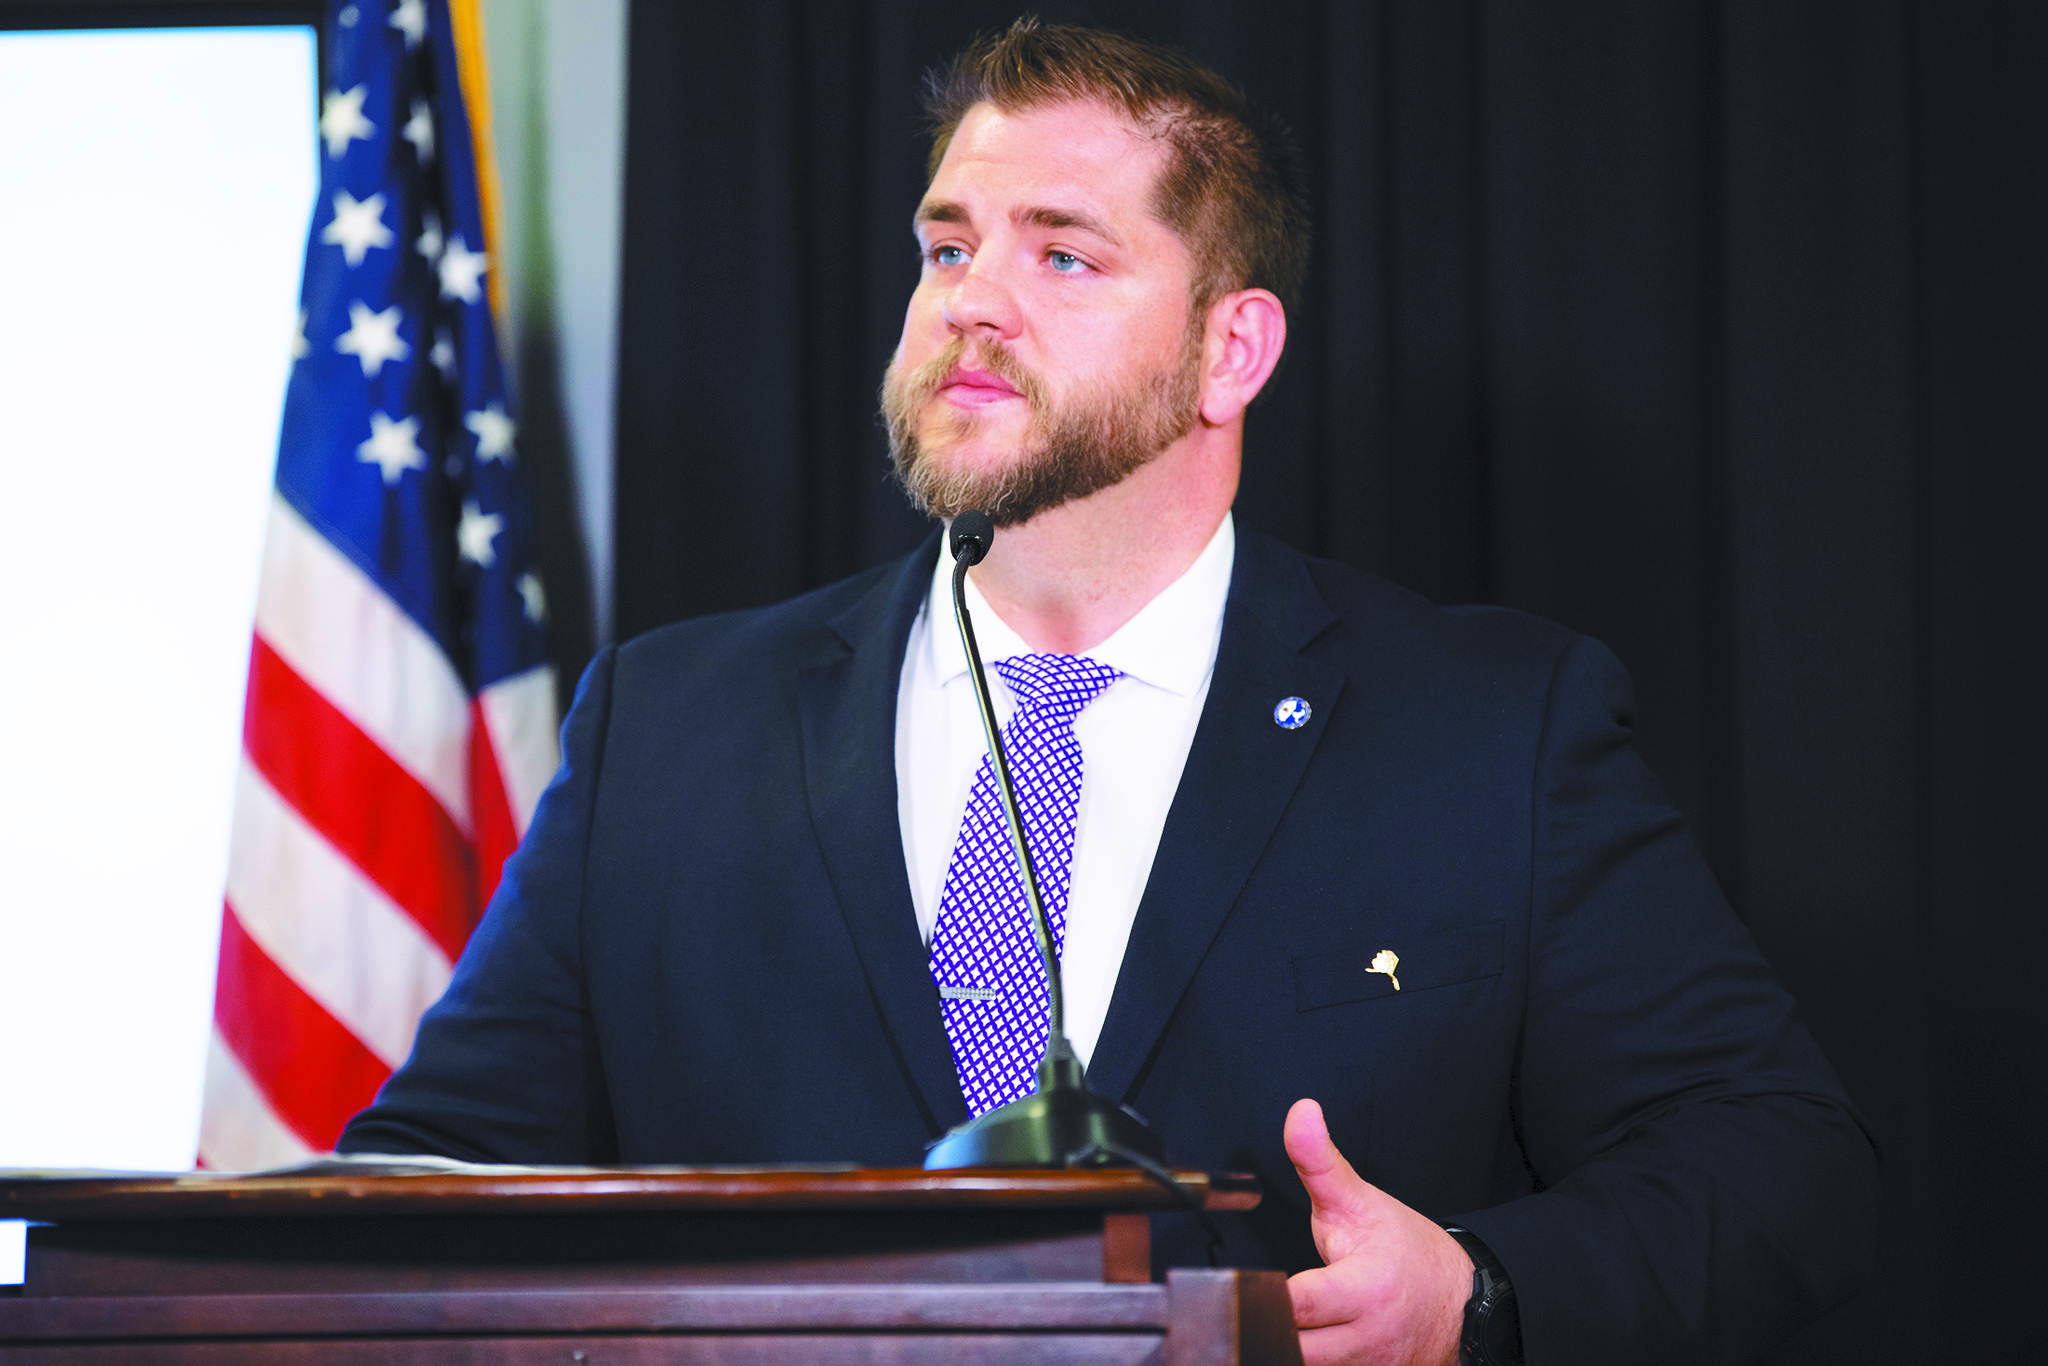 Alaska Department of Health and Social Services Commissioner Adam Crum speaks during a Tuesday, April 7, 2020 press conference in the Atwood Building in Anchorage, Alaska. (Photo courtesy Office of the Governor)